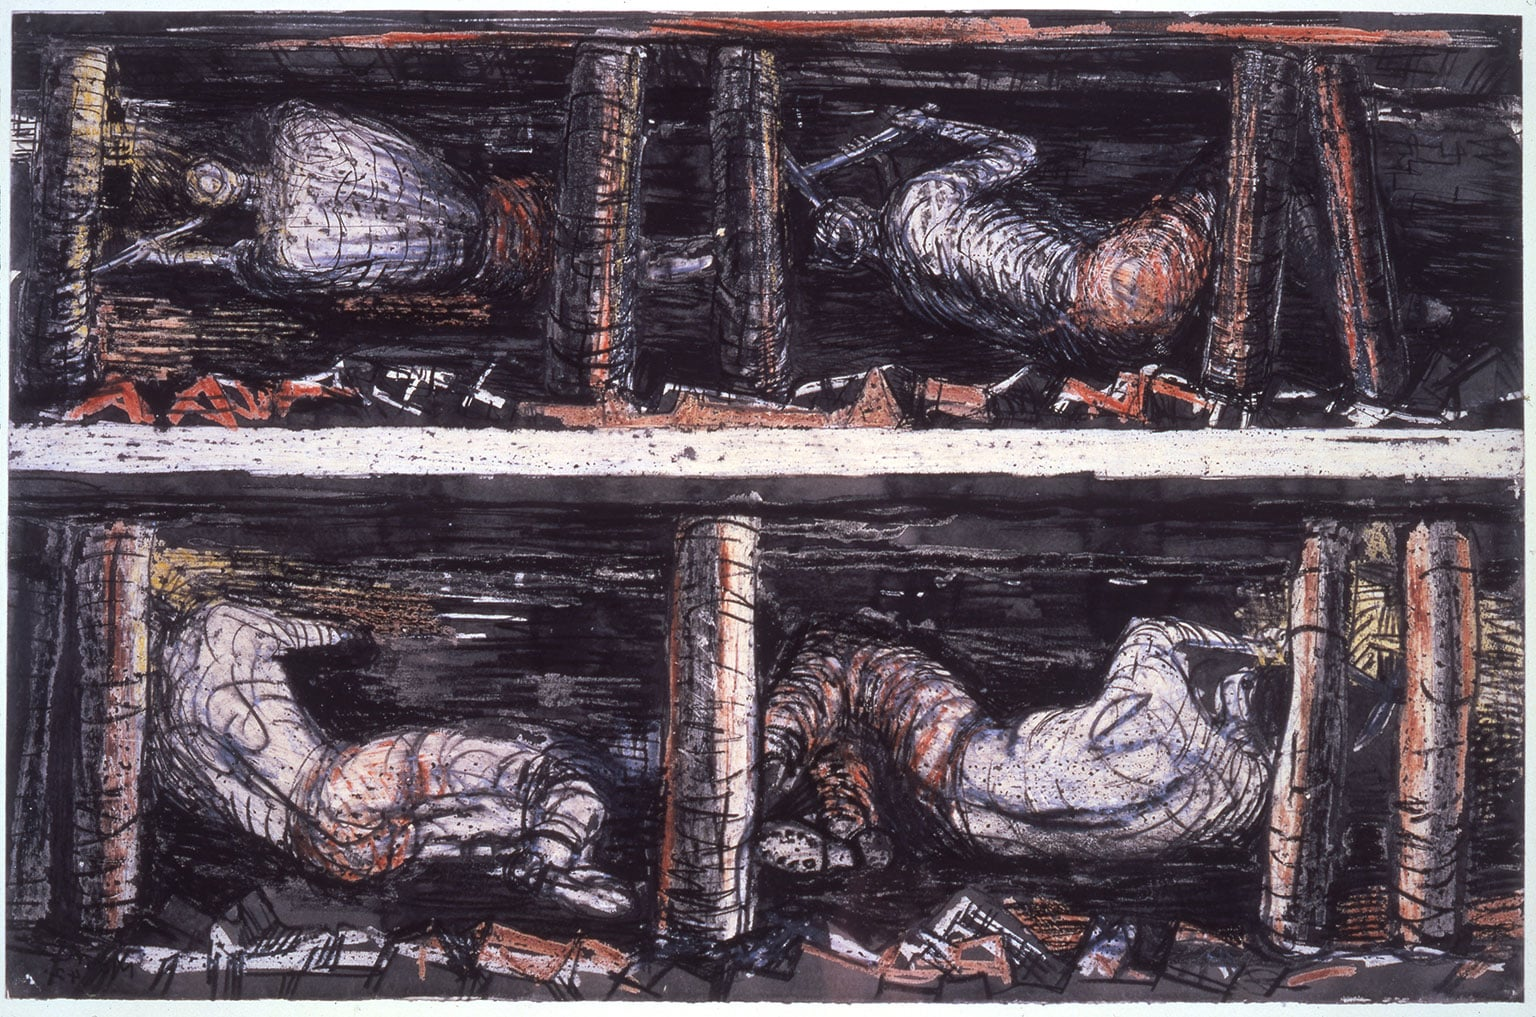 Henry Moore, Four Studies of Miners at the Coalface, 1942